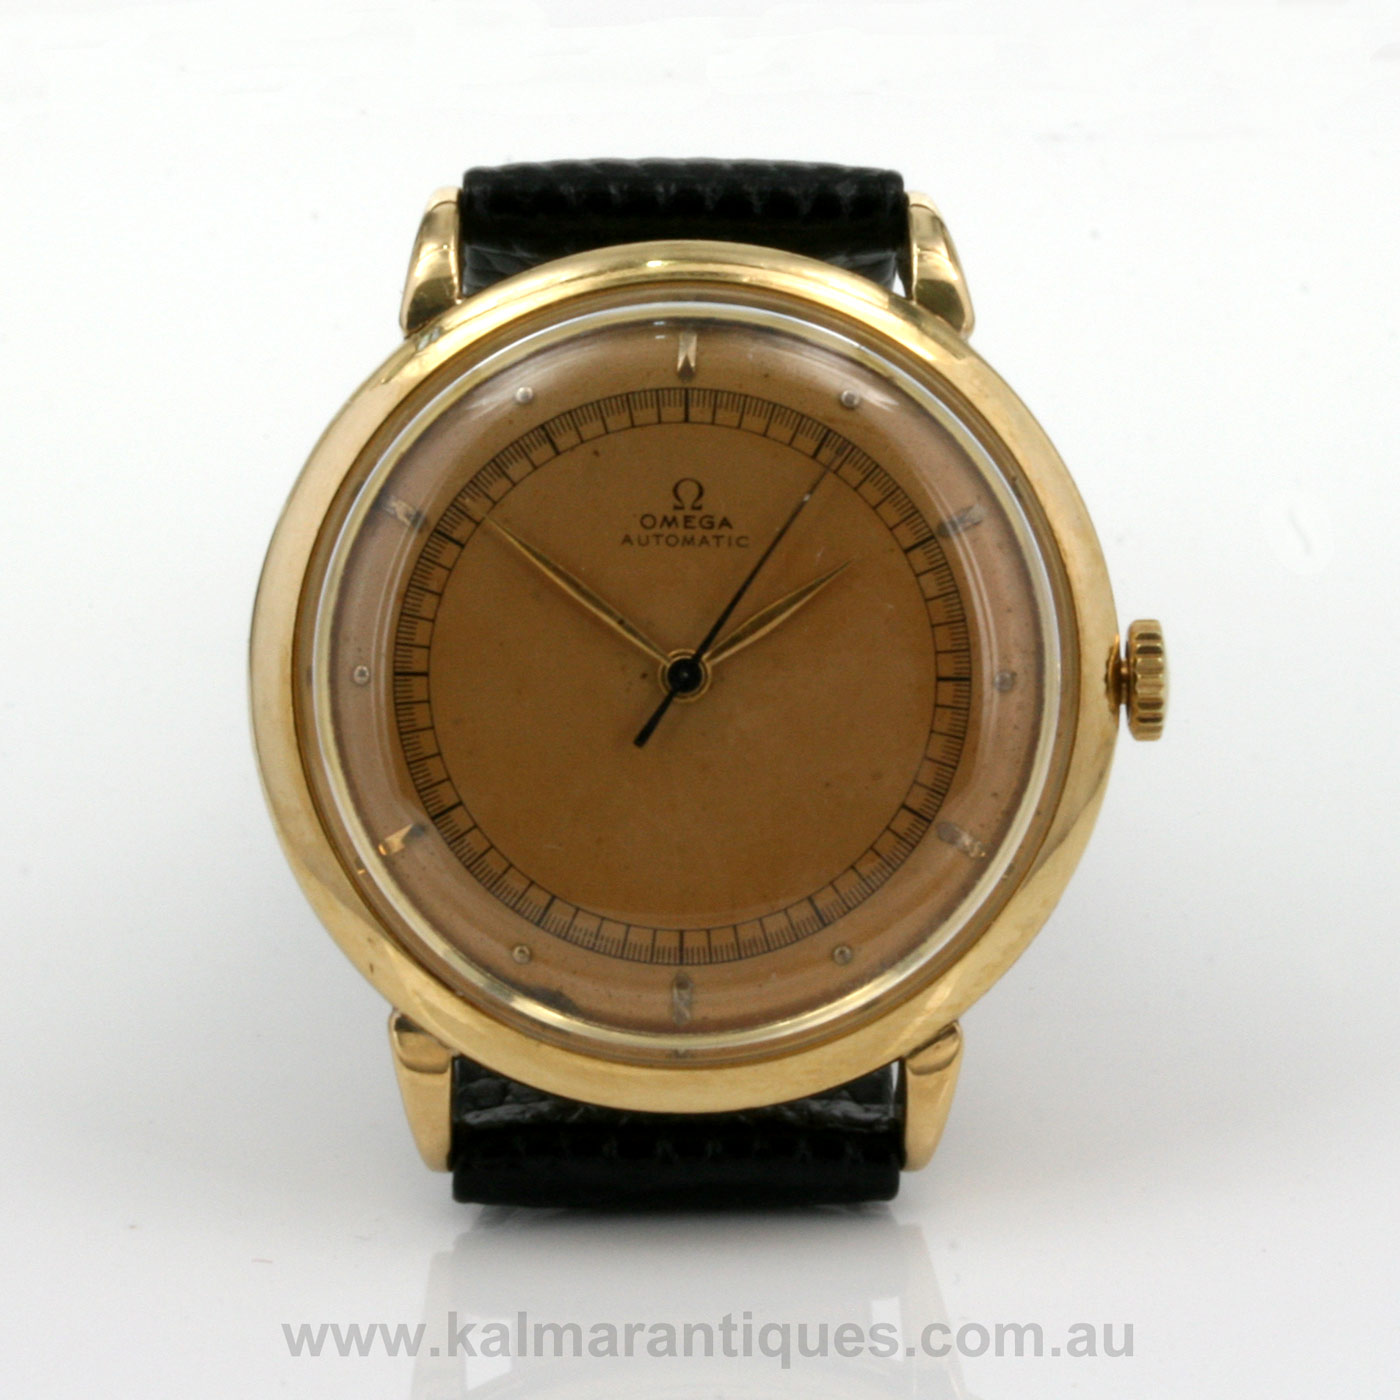 Buy 18ct vintage omega watch from 1944 sold items sold omega watches sydney kalmarantiques for Omega watch vintage